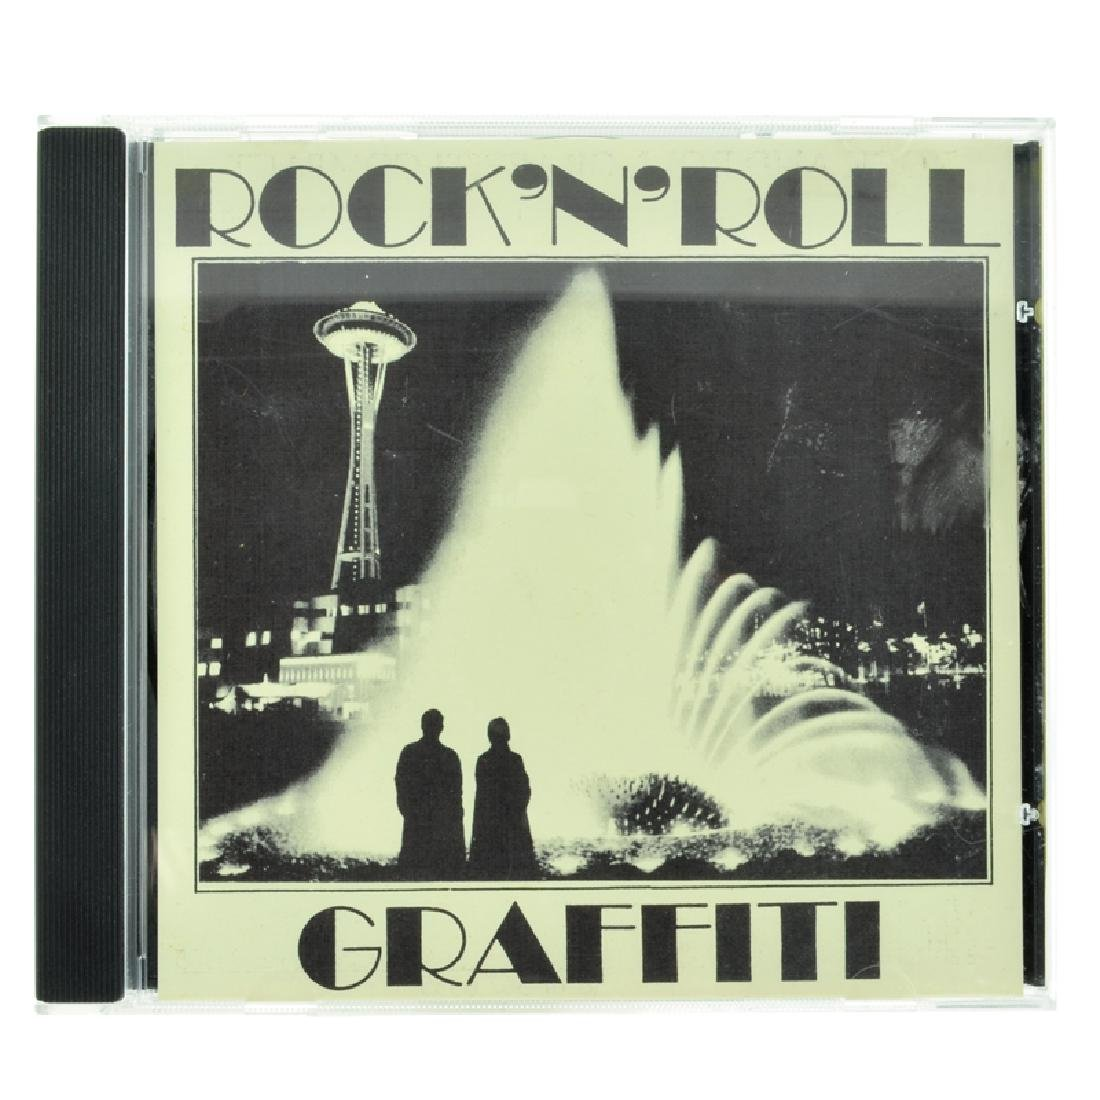 Rock 'N' Roll Graffiti CDs